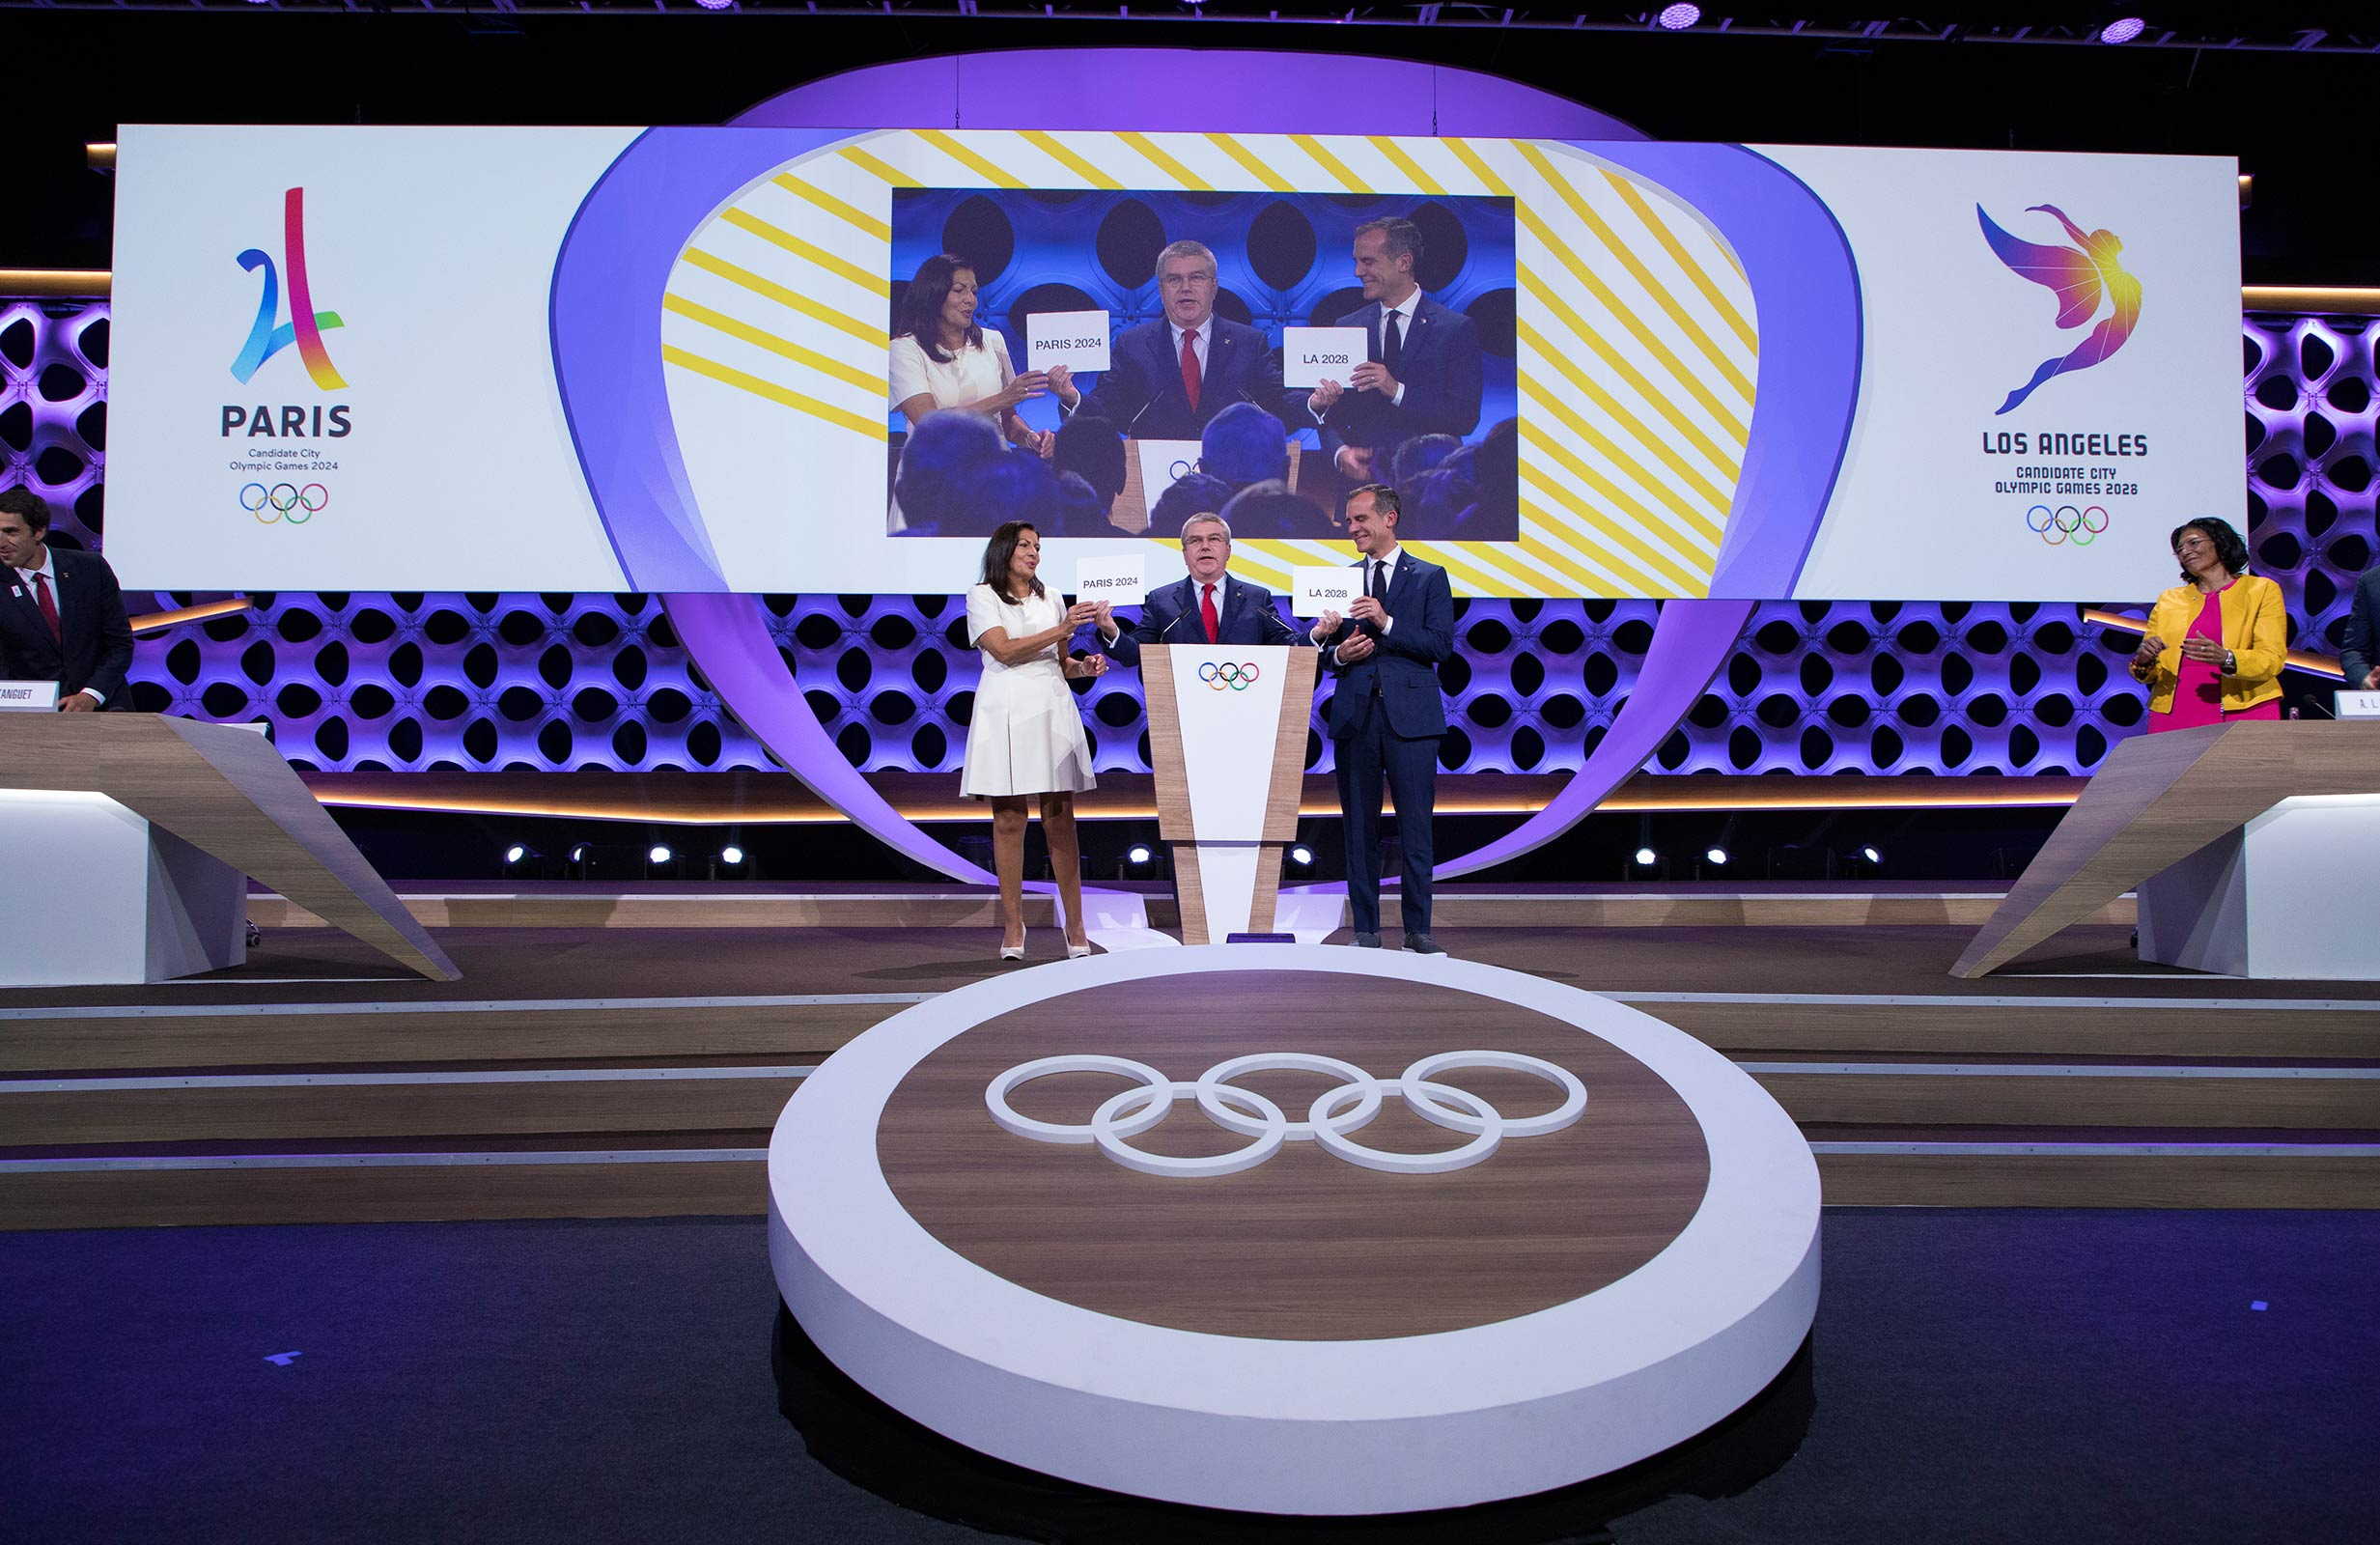 Paris 2024 and LA 2028 celebrate in Lima